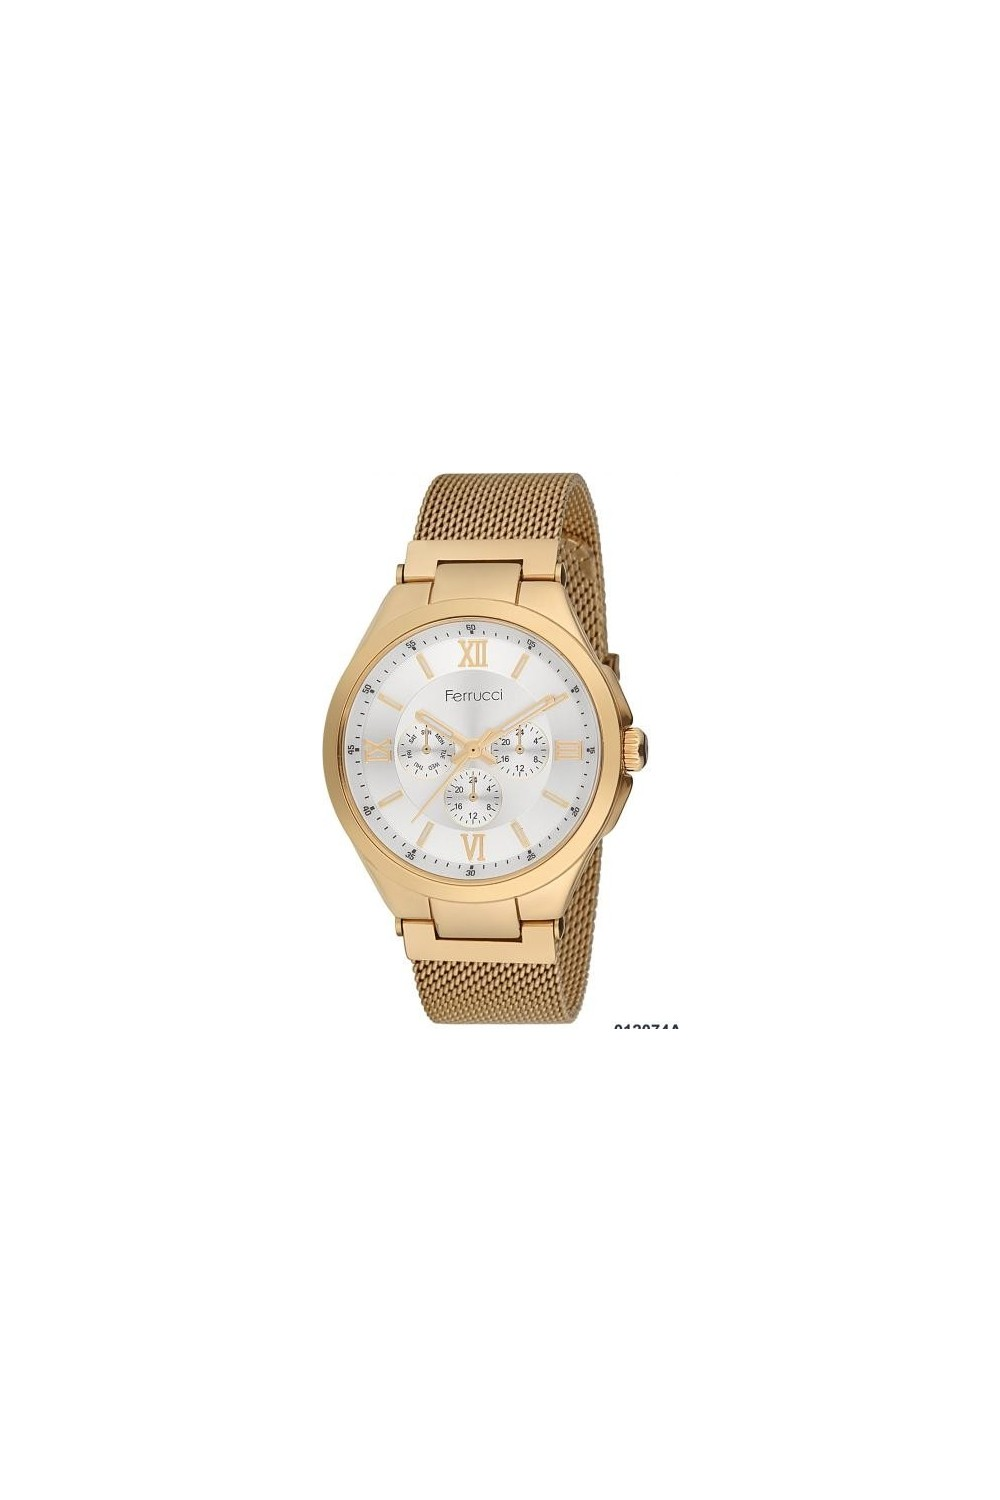 Ferrucci Women's Watch 12074H.02